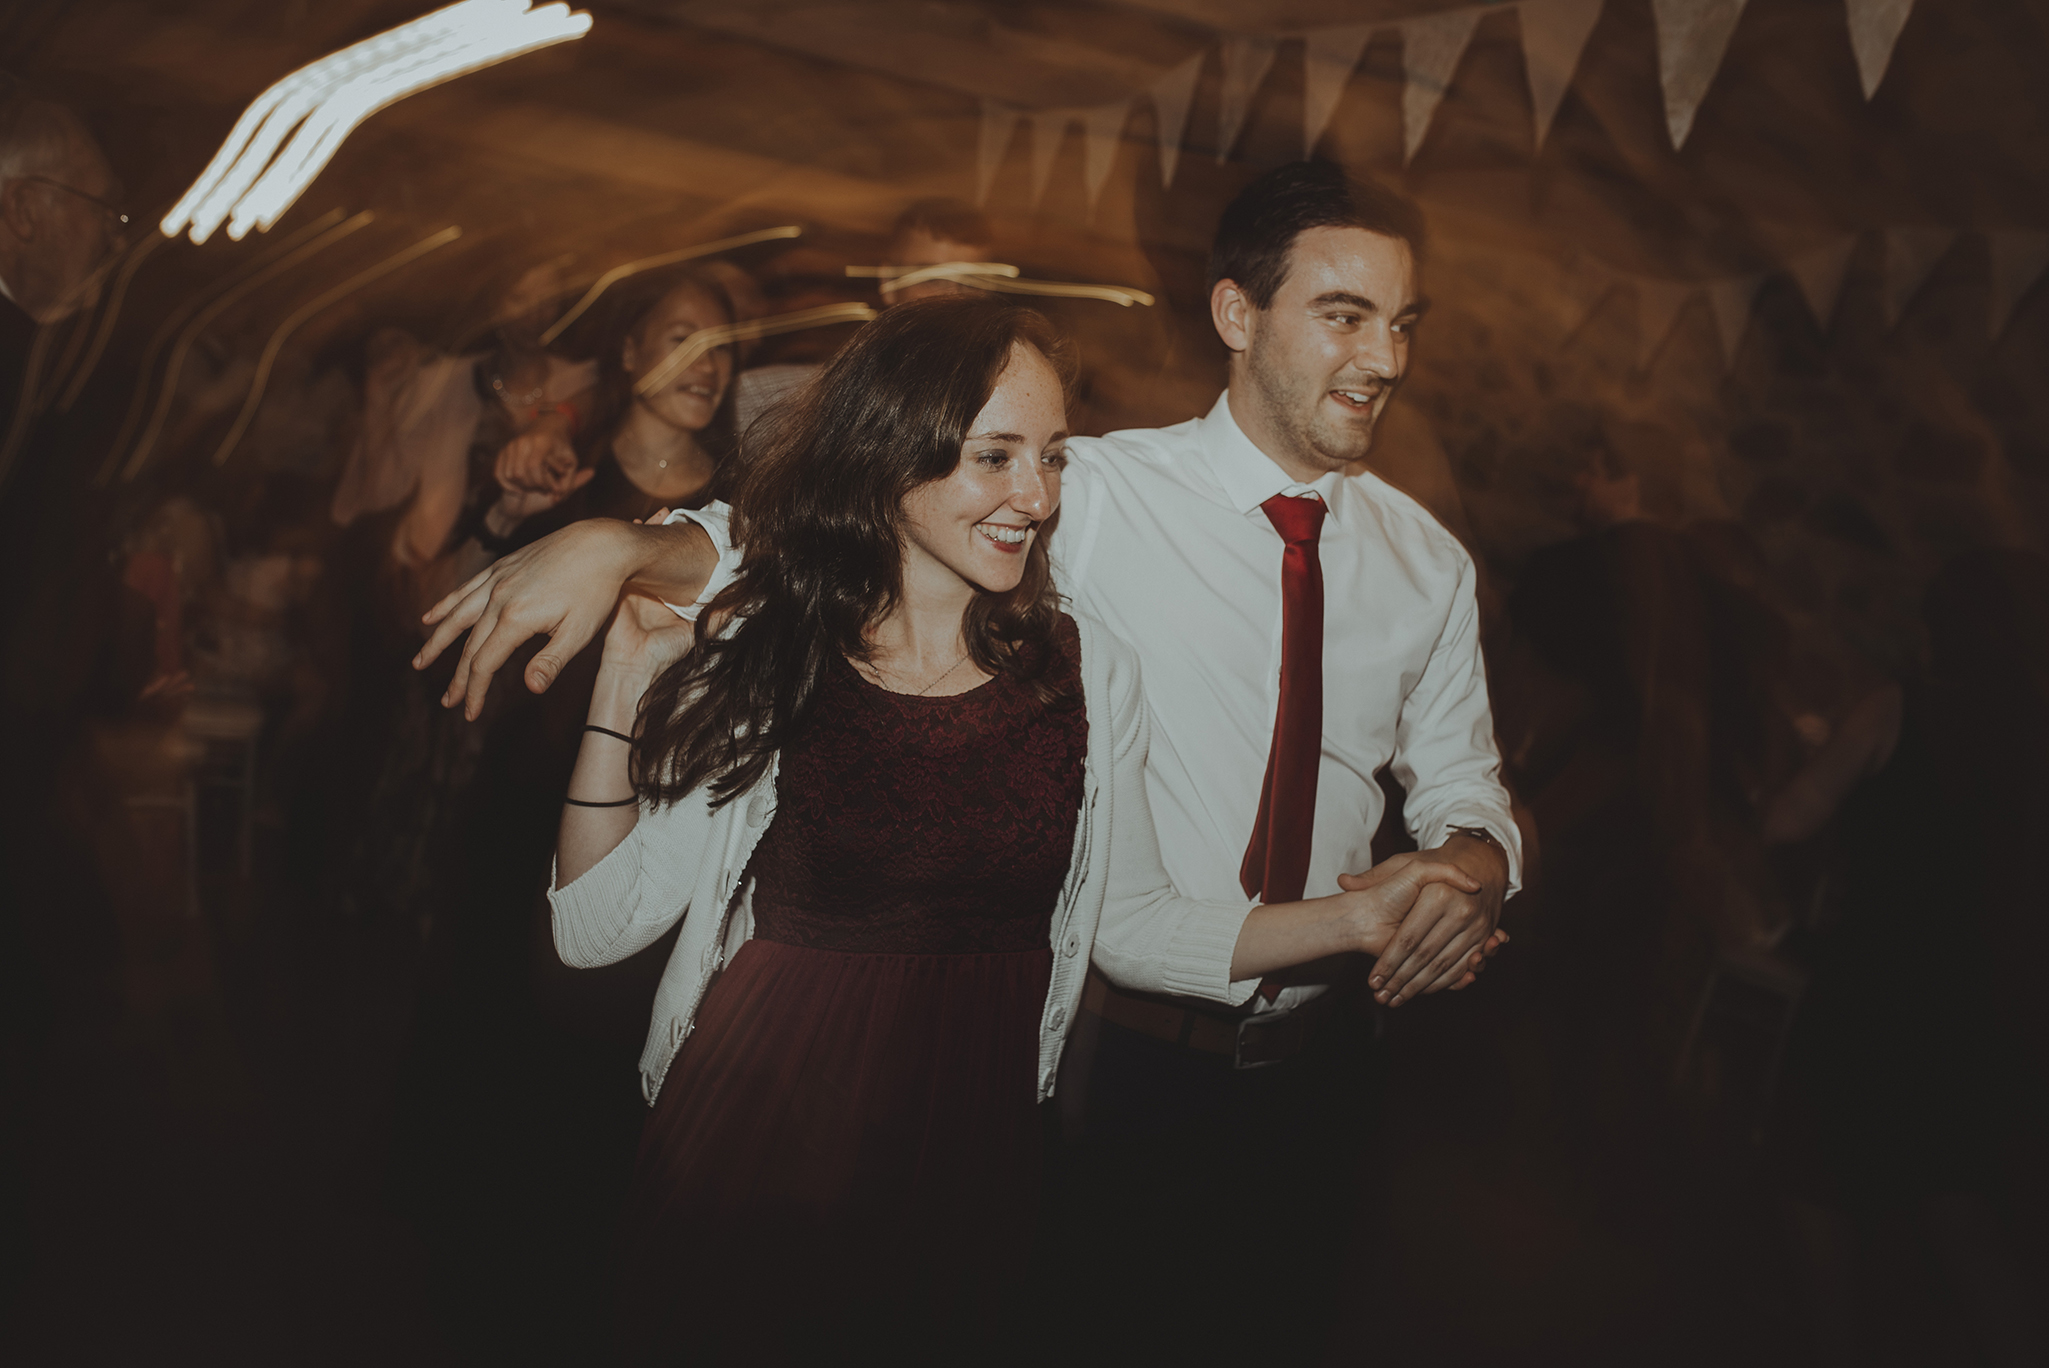 Wedderburn Barn Wedding 60.jpg